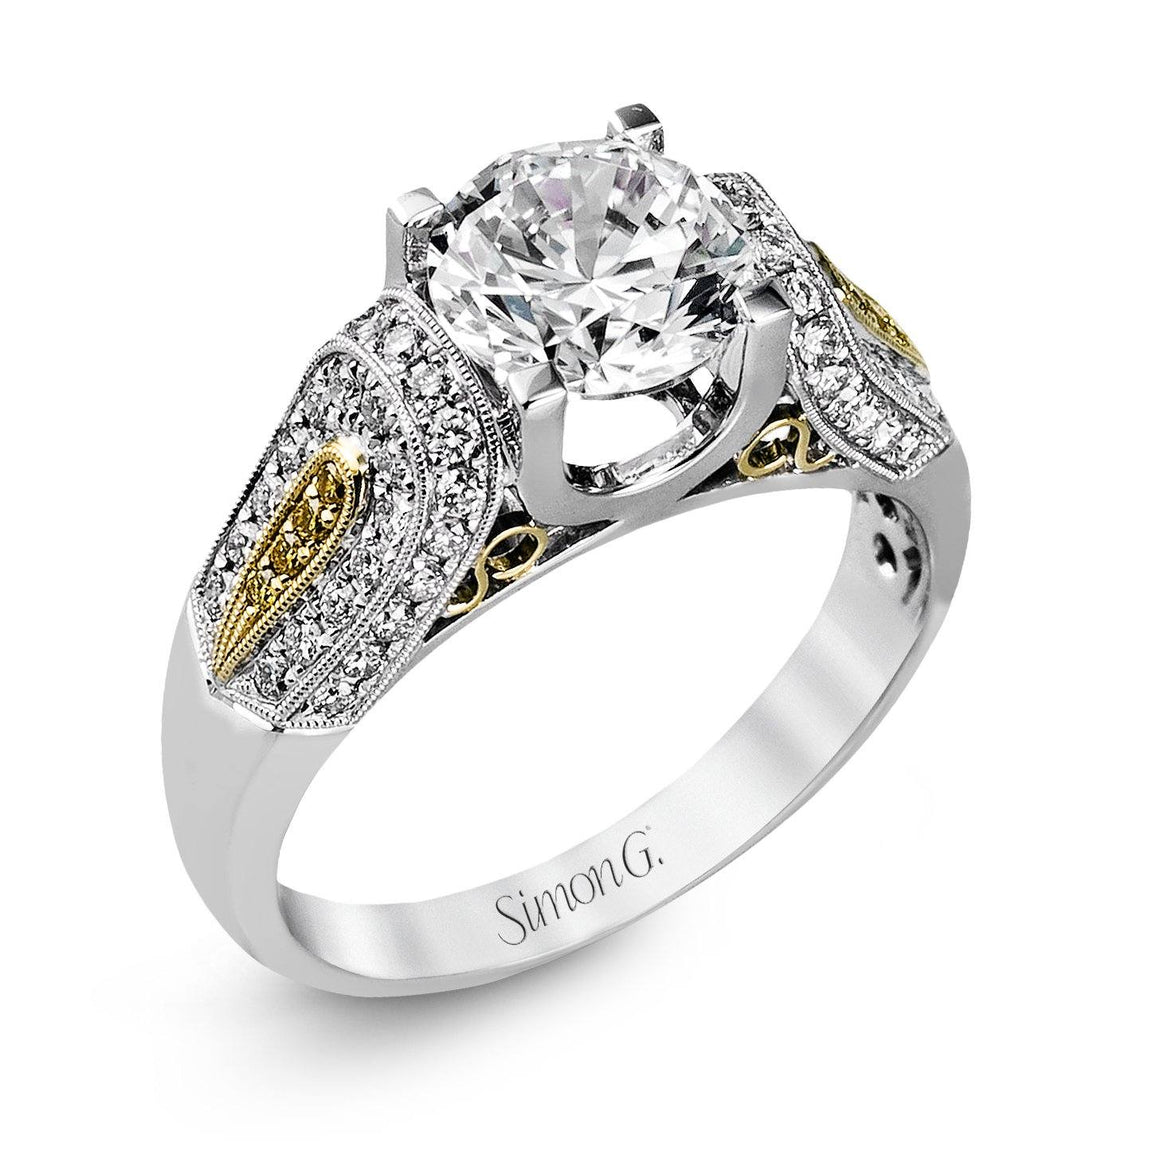 Simon G - LP1674, Engagement Ring, Simon G - Birmingham Jewelry